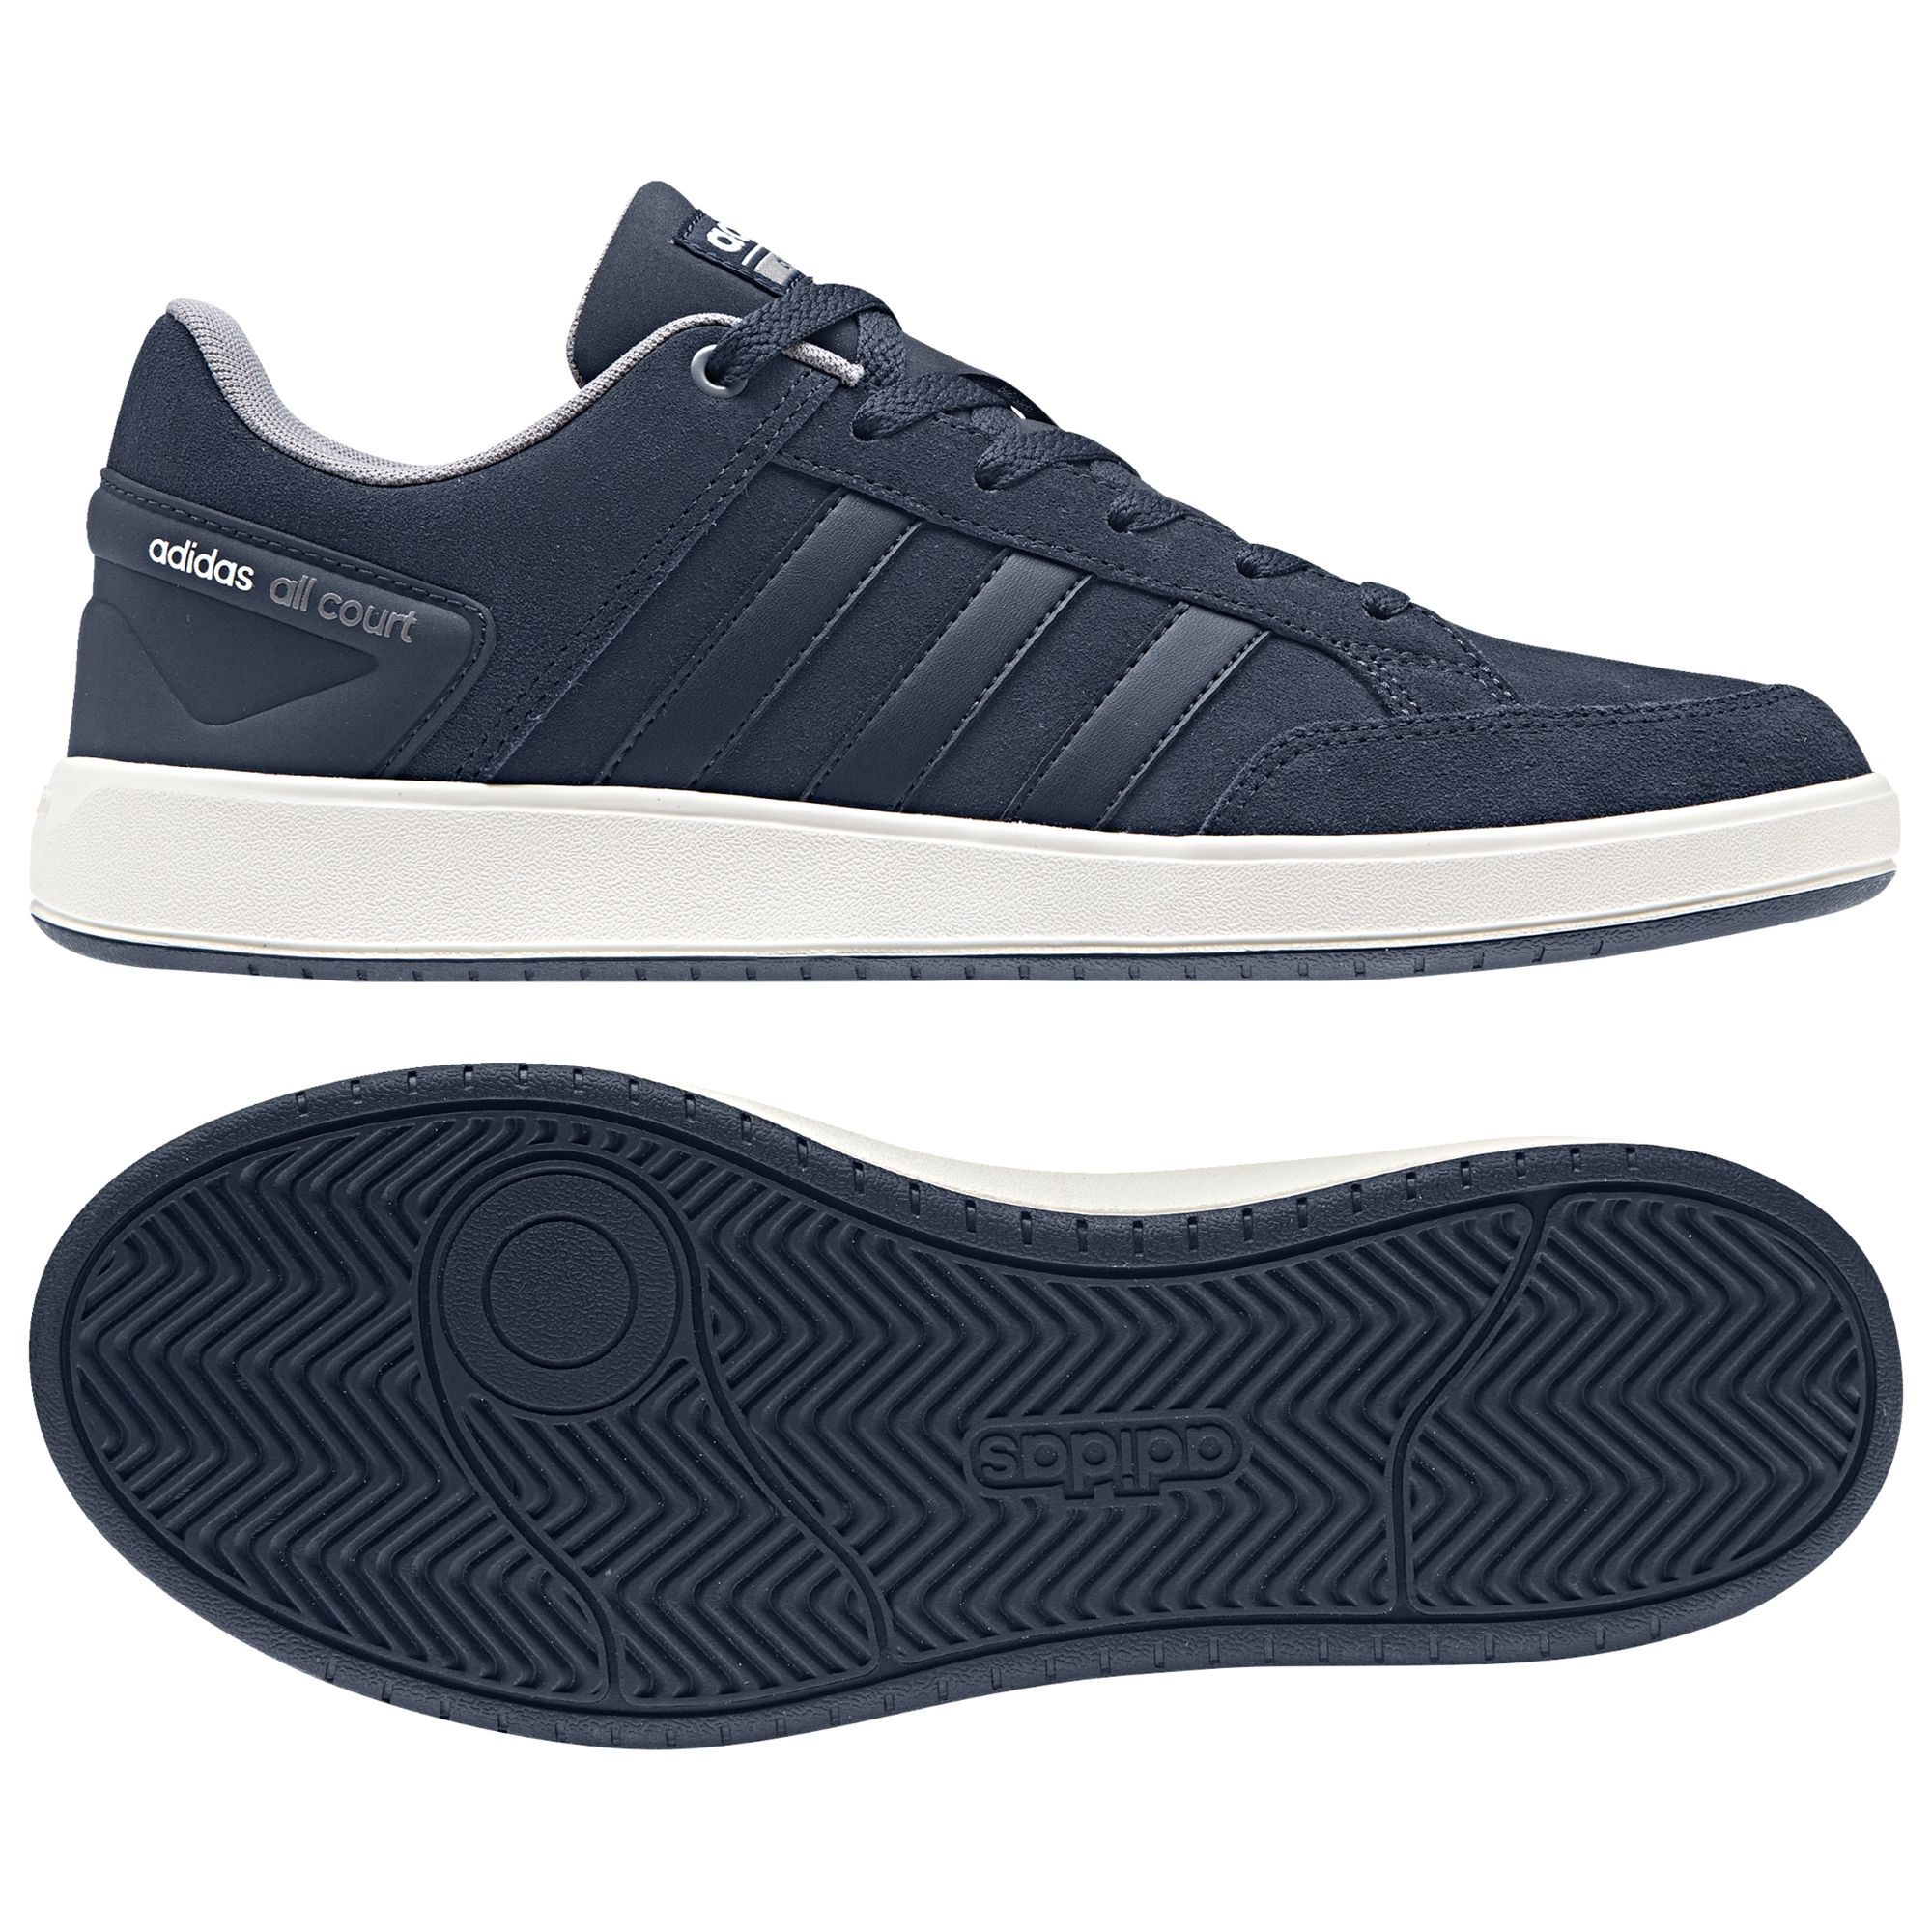 adidas all court shoes off 67% - www.usushimd.com